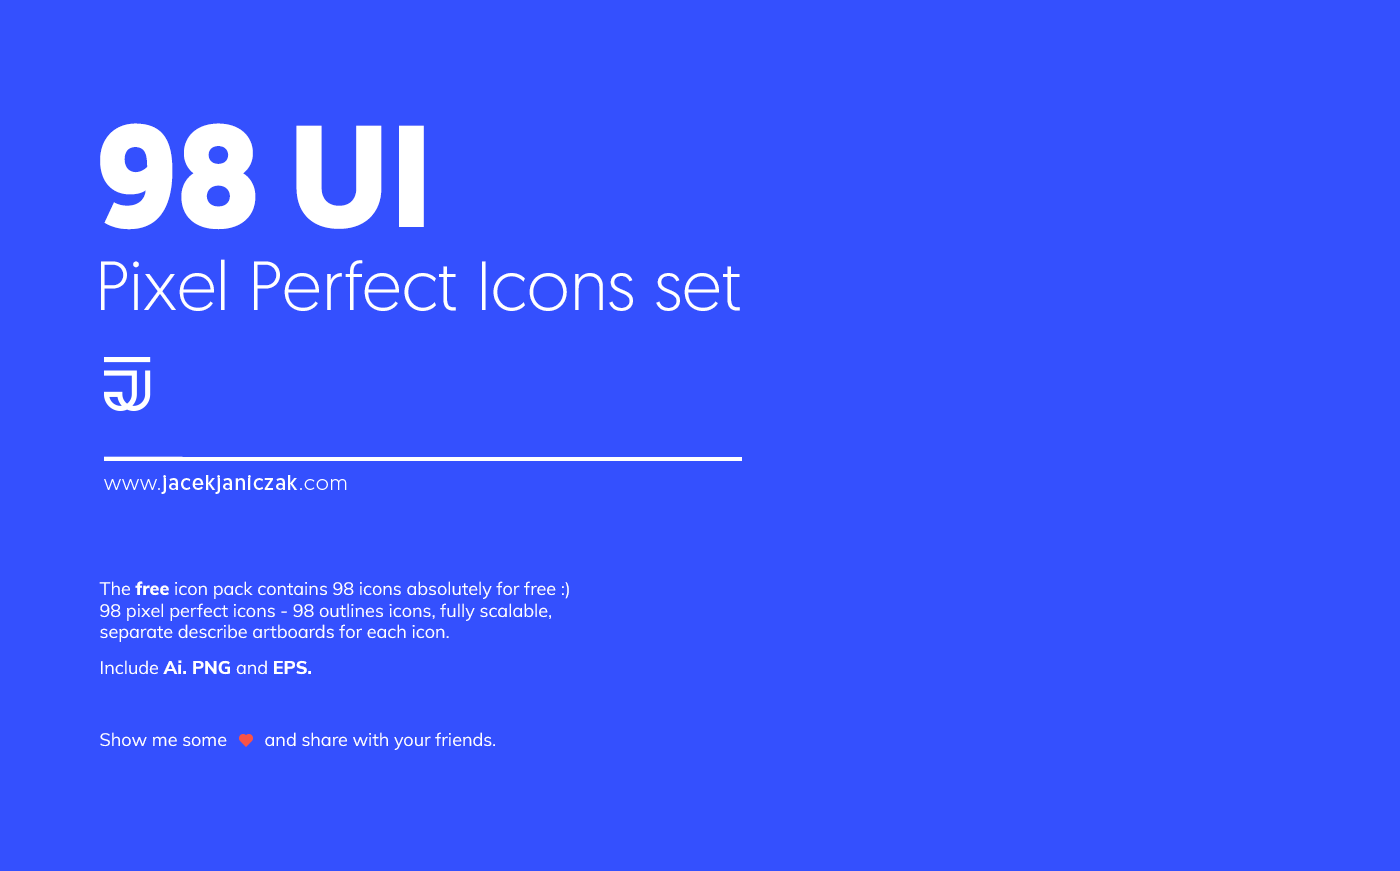 98 UI Pixel Perfect Icons Set for AI Designers